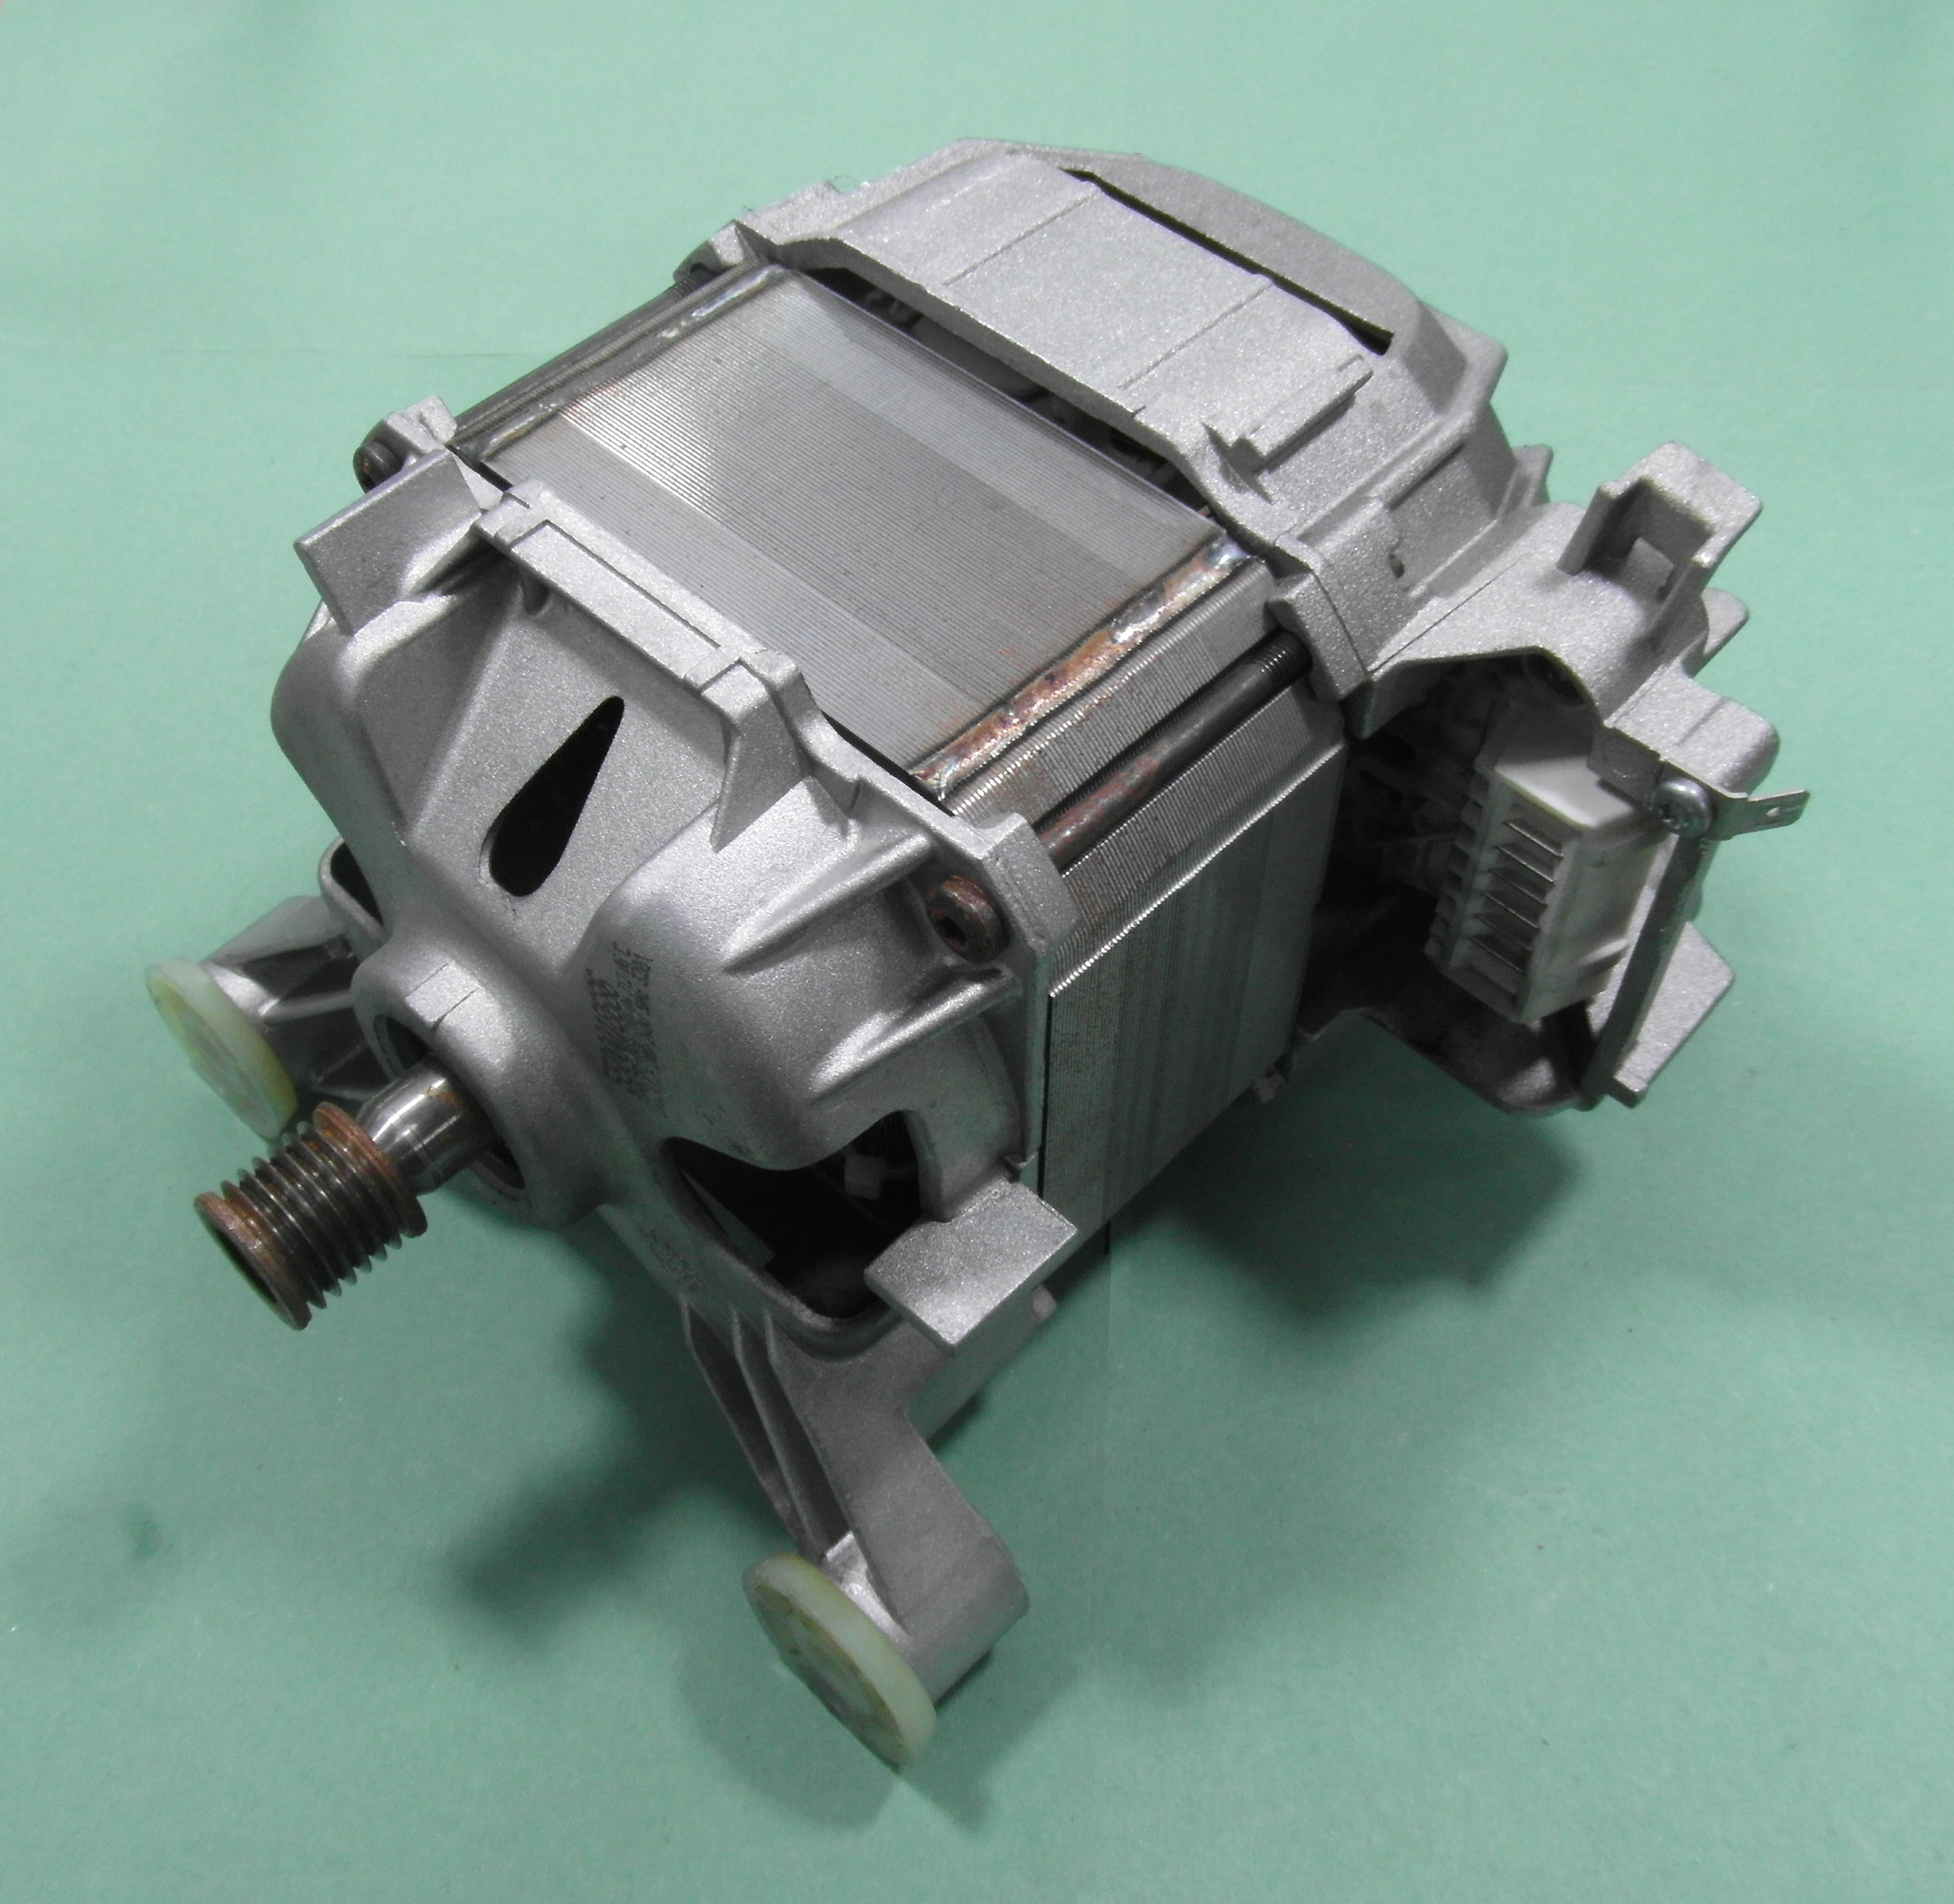 Bosch washing machine motor 5500018686 ebay for Washing machine motor repair